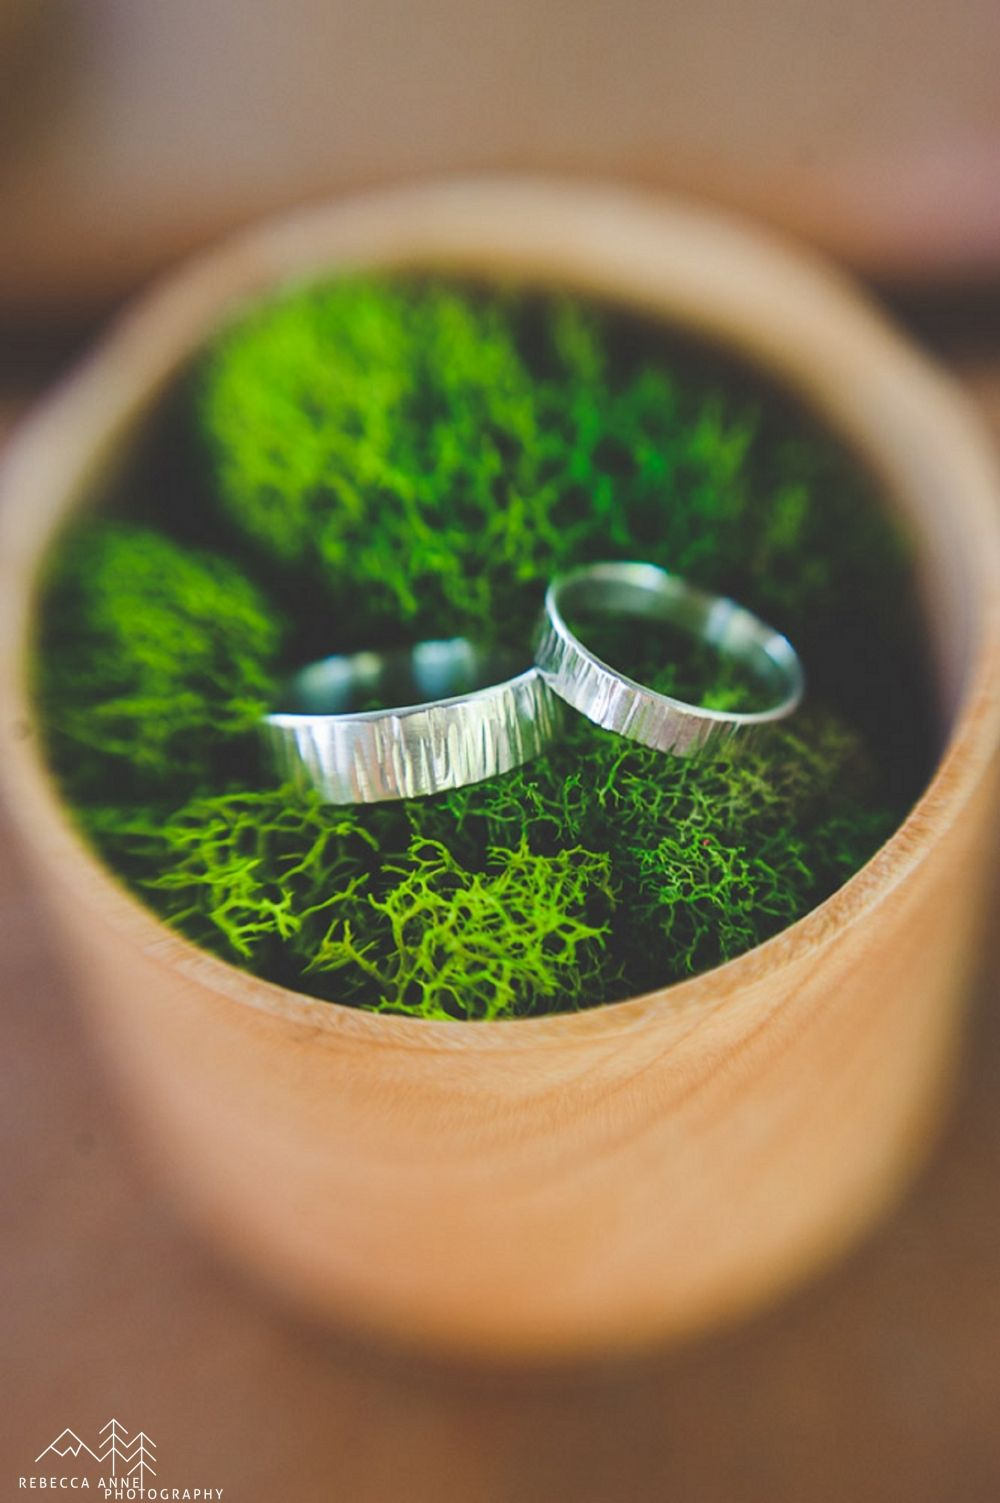 Glamping Styled Wedding Shoot // Friday Harbor by local Tacoma Wedding Photographer Rebecca Anne Photography.  Rings by Rito Originals. #weddingrings #rings #woodgrain #woodgrainrings